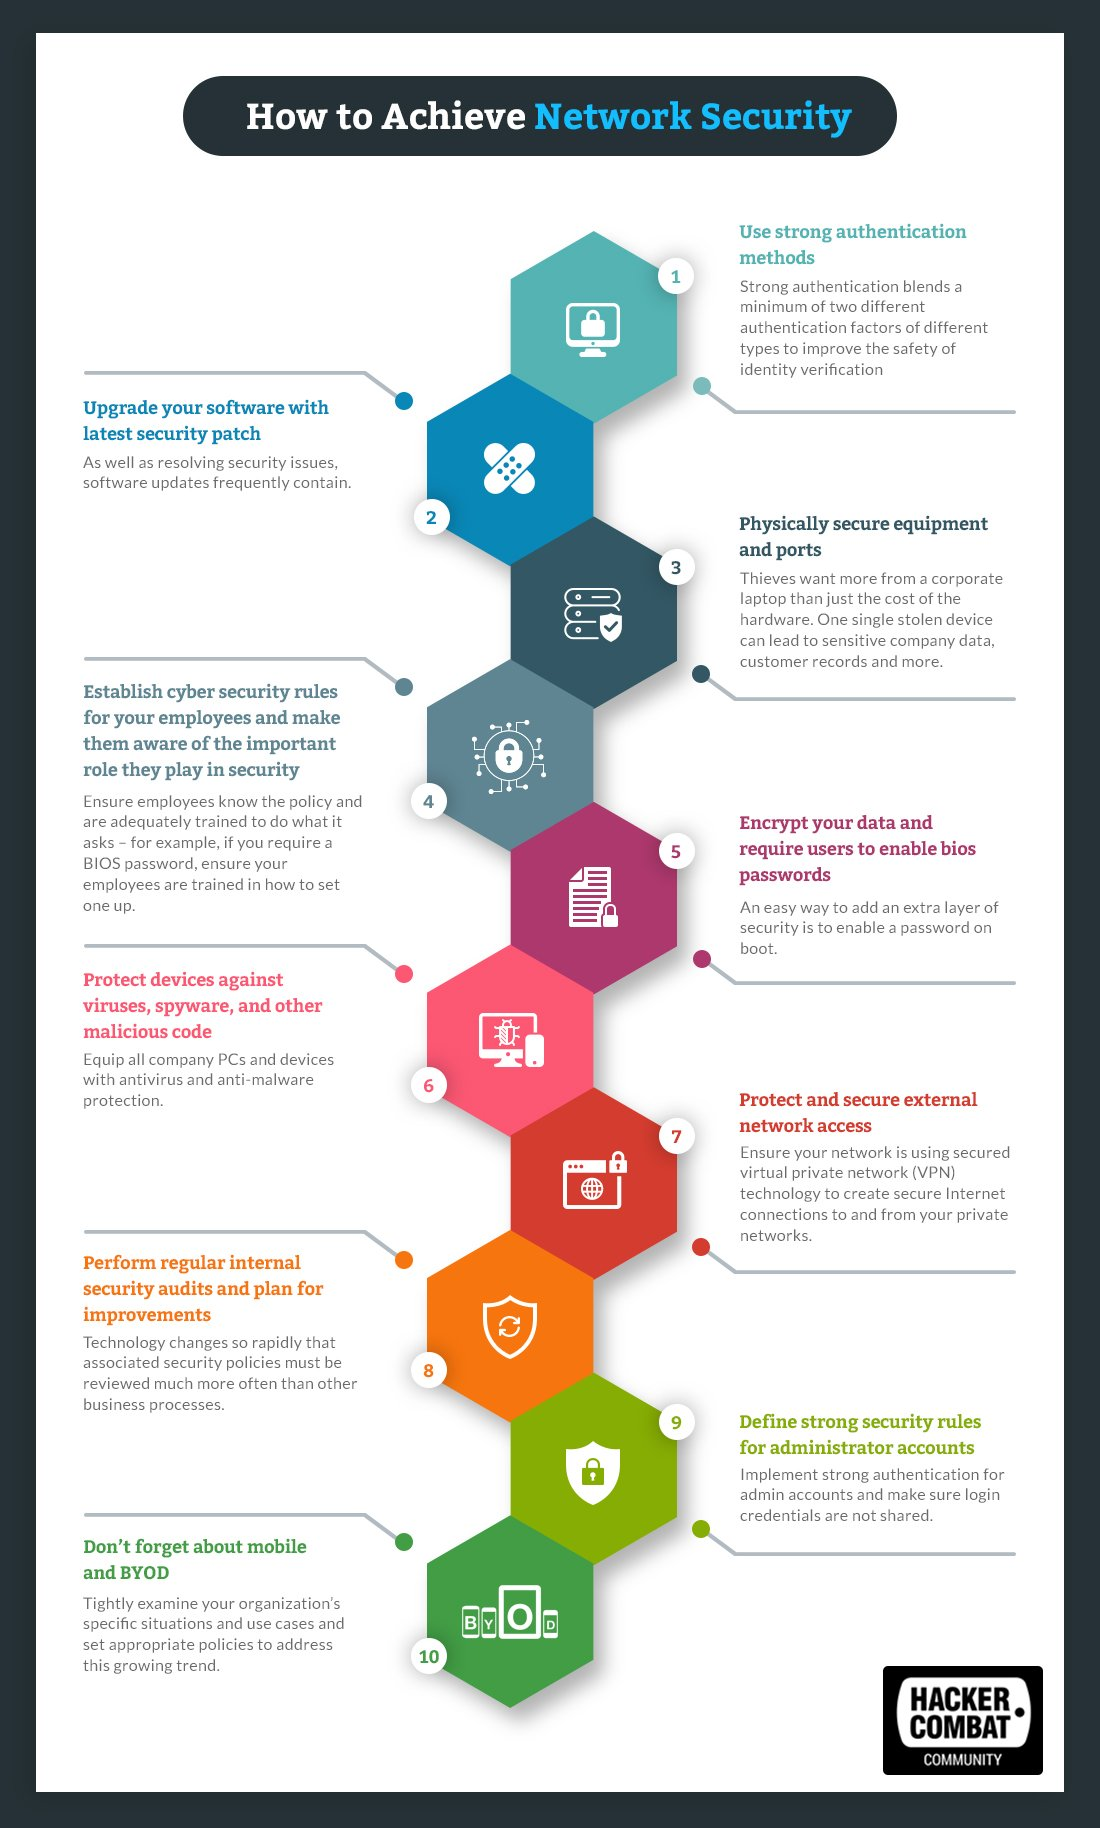 Easy Tips for Achieving Network Security [Infographic]